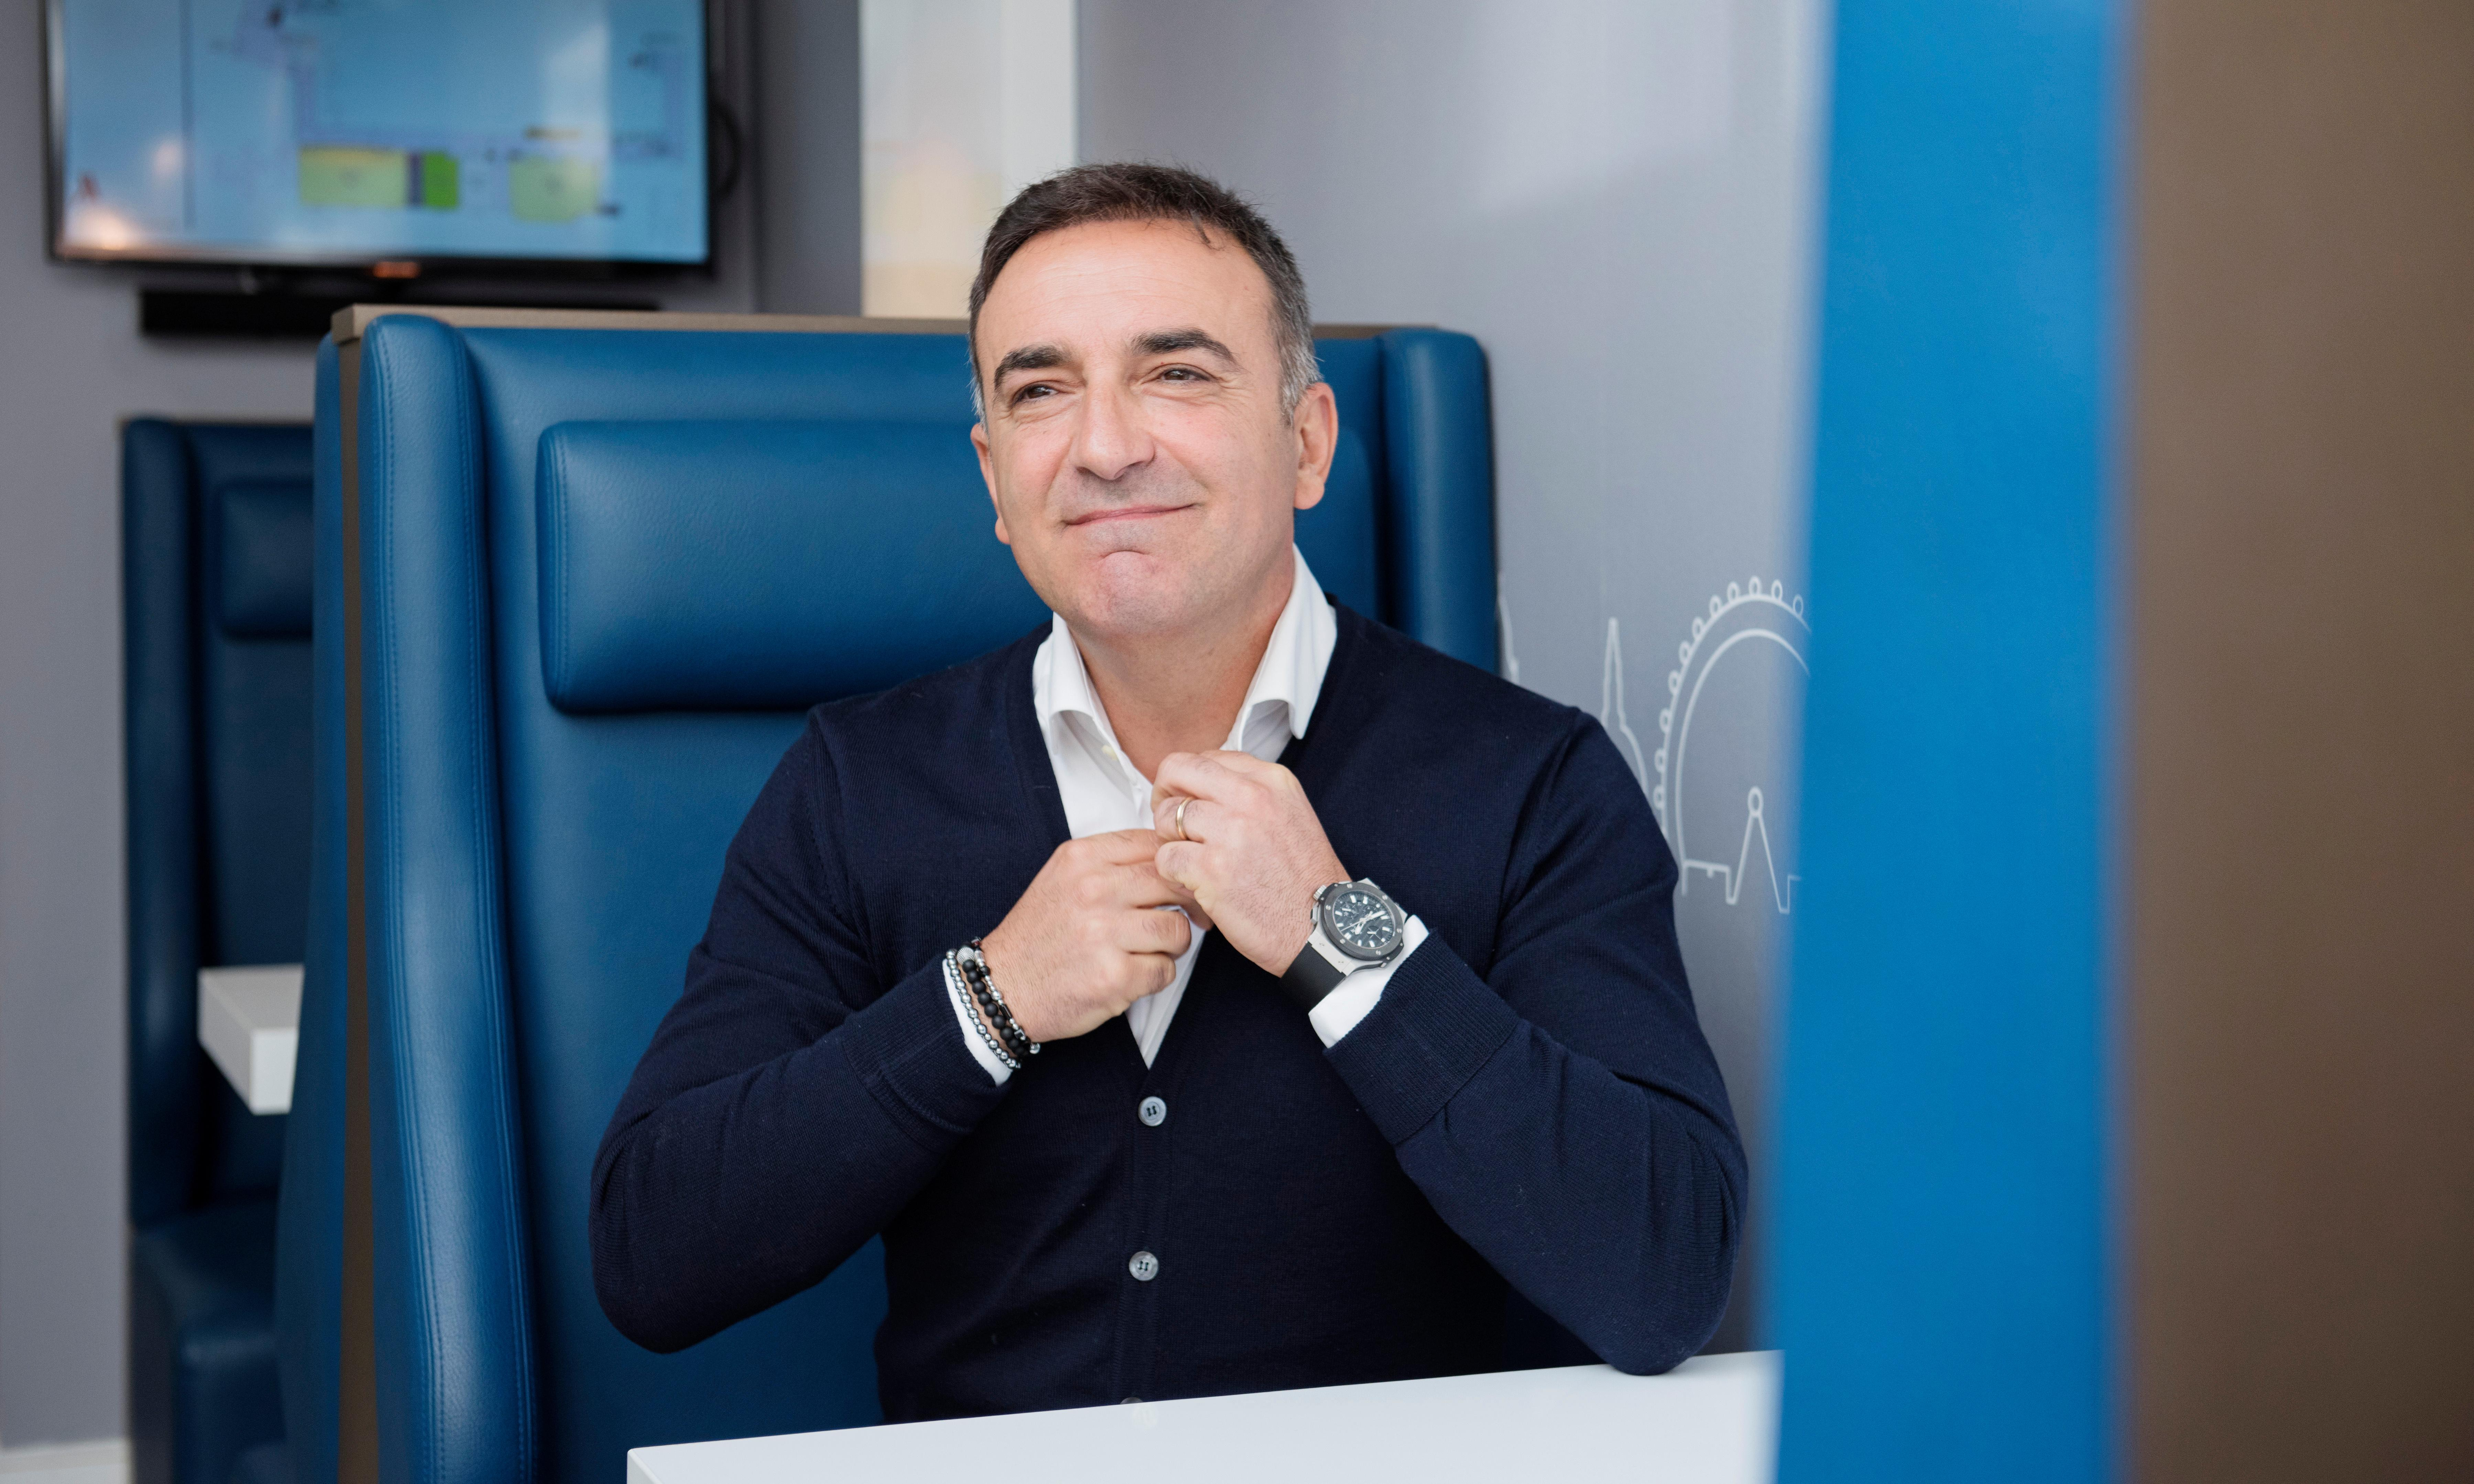 Carlos Carvalhal: 'I was surrounded by classical music, art and ballet'